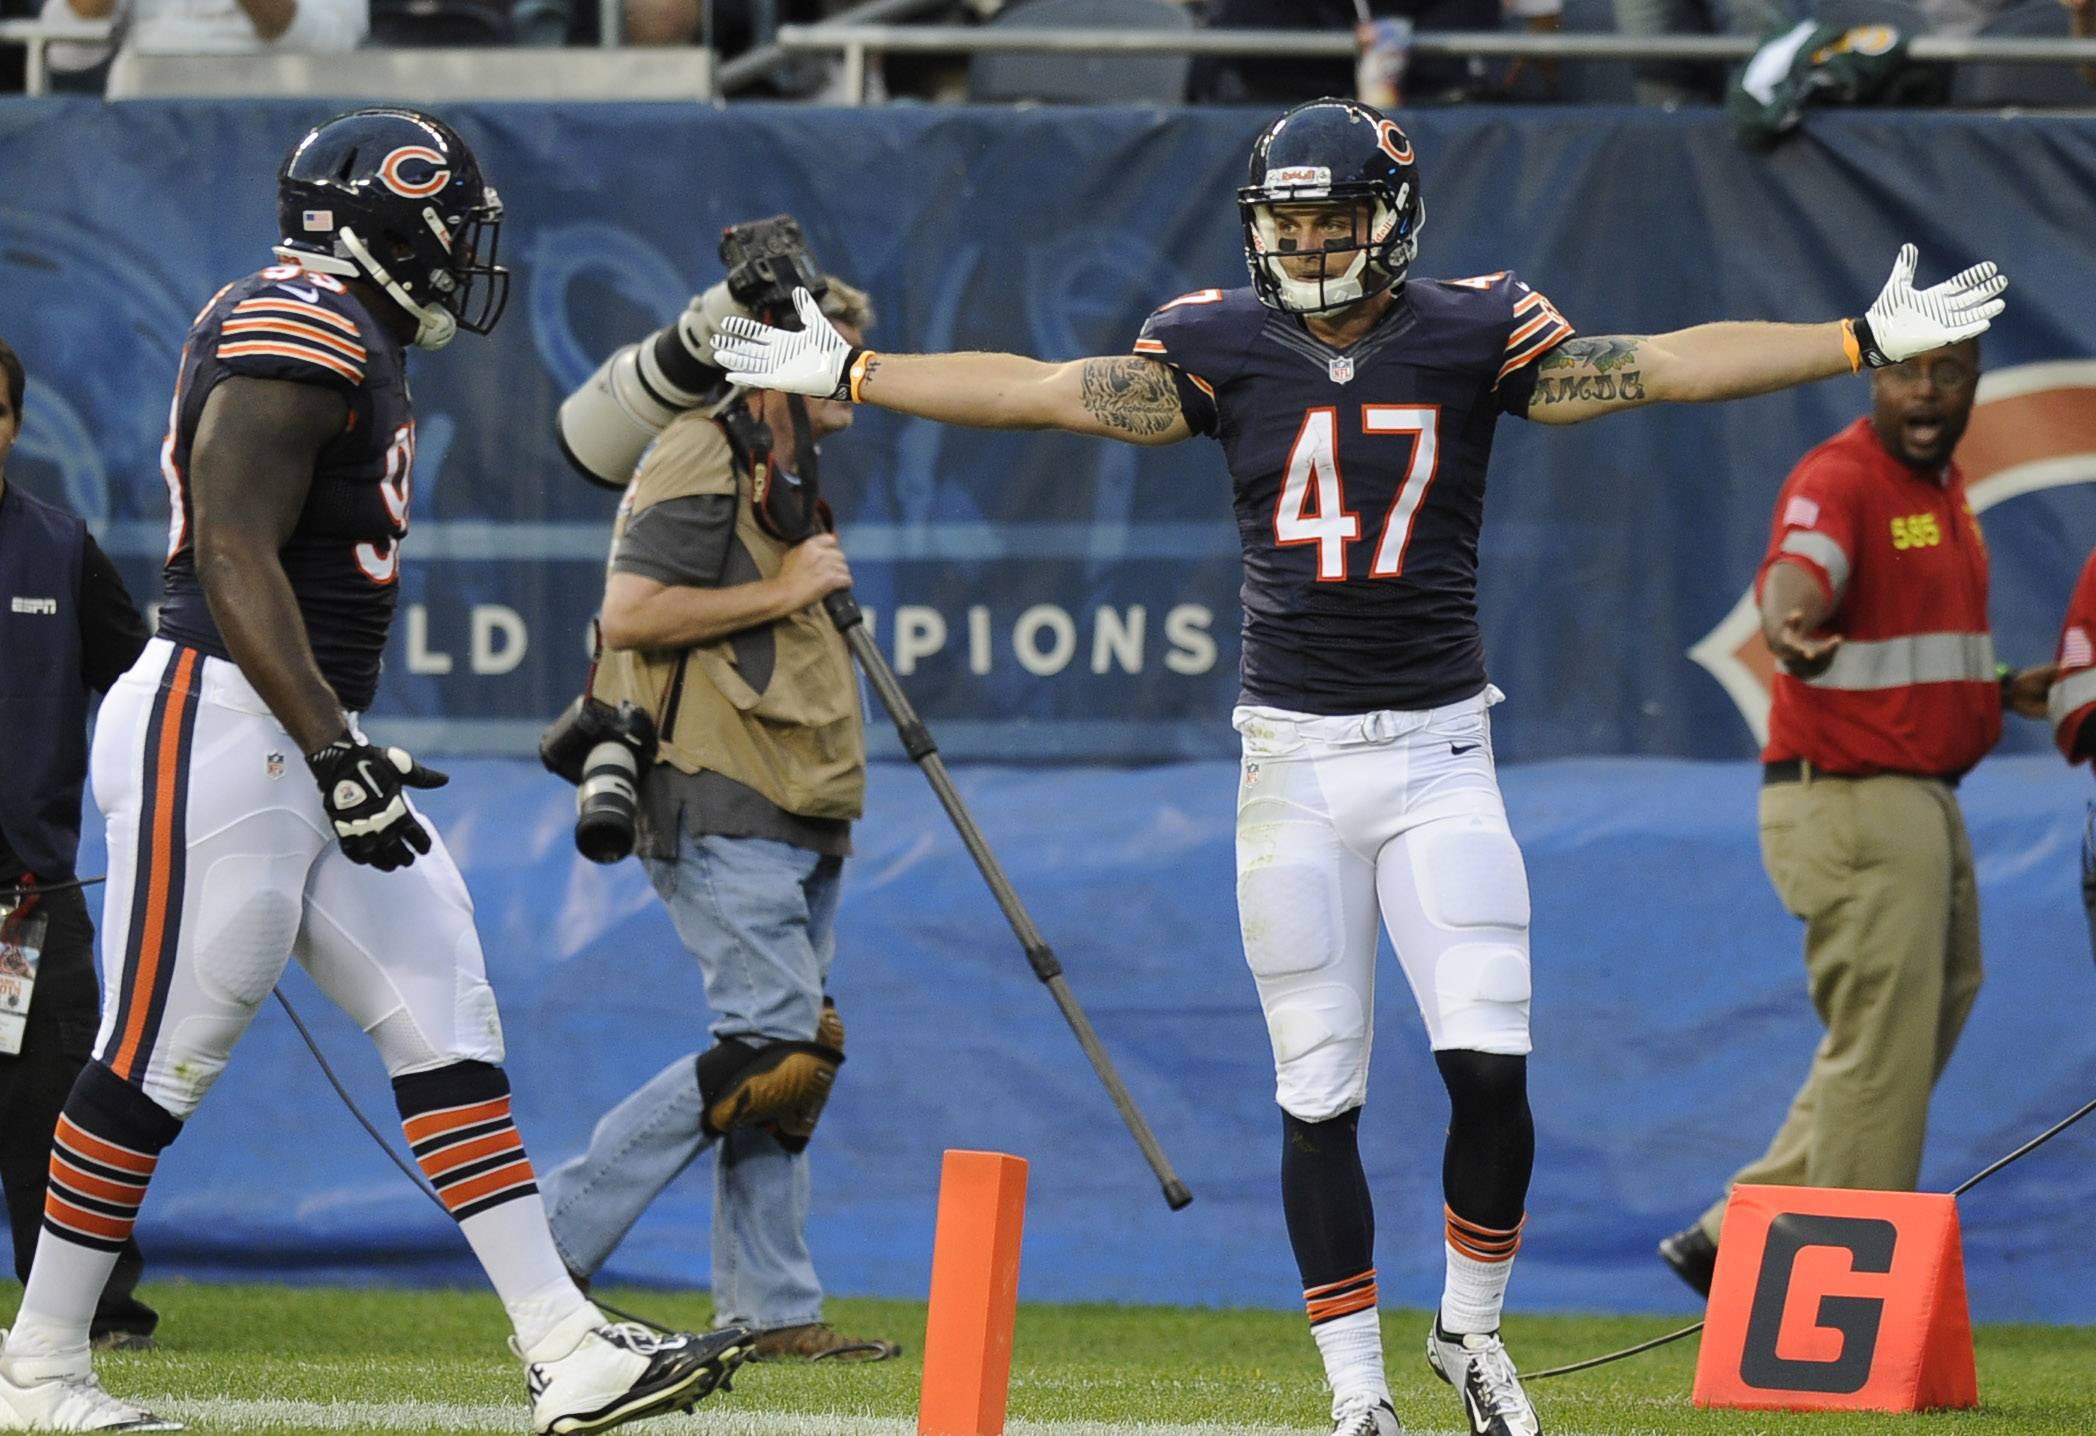 Bears safety Chris Conte (47) is fully aware of how fans feel about him, but he says all he can worry about is doing his job.